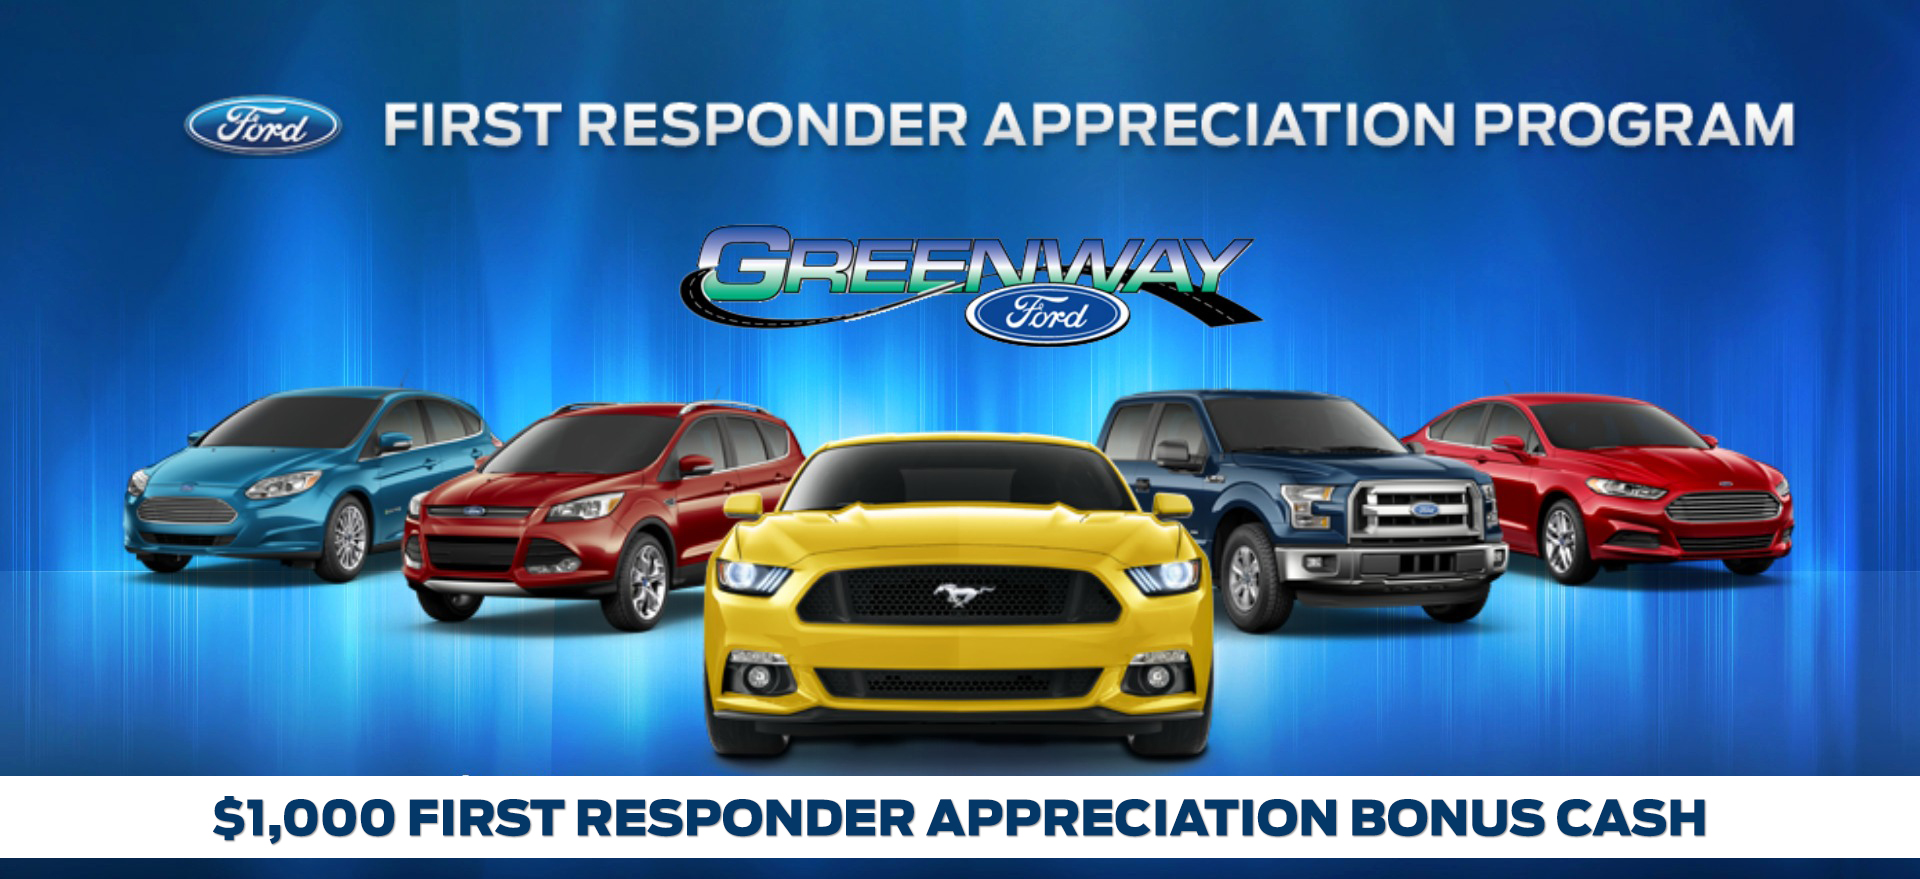 $1000 First responder car program from Greenway Ford in Orlando FL